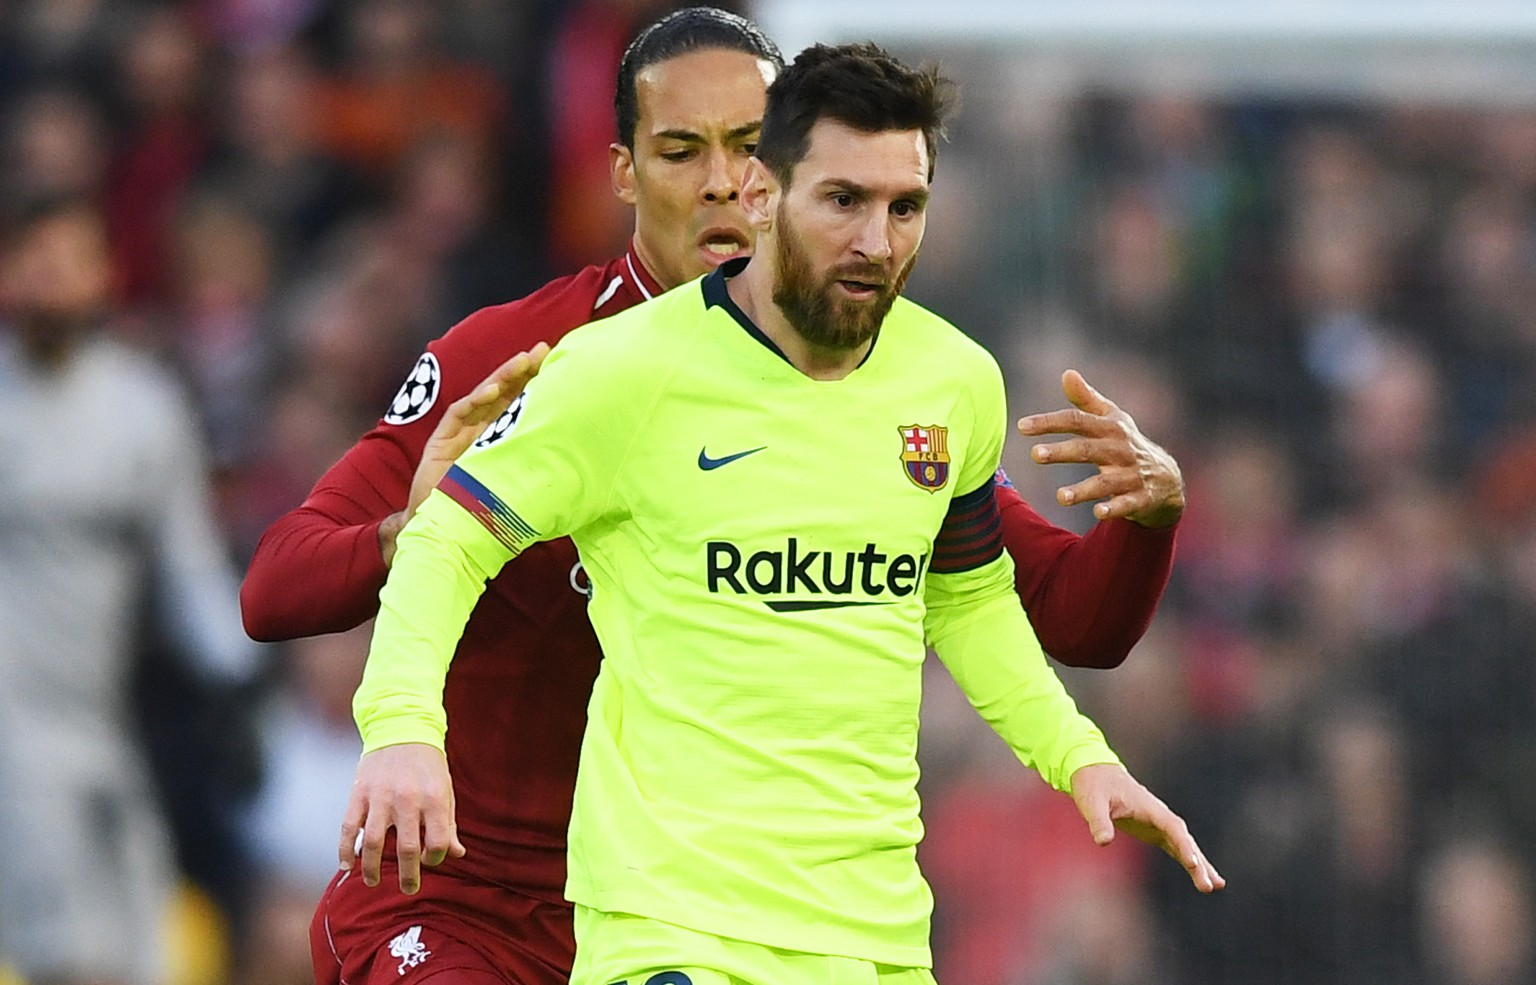 epa07554479 Virgil Van Dijk of Liverpool and Lionel Messi (front) of Barcelona in action during the UEFA Champions League semi final second leg soccer match between Liverpool FC and FC Barcelona at Anfield, Liverpool, Britain, 07 May 2019.  EPA/NEIL HALL